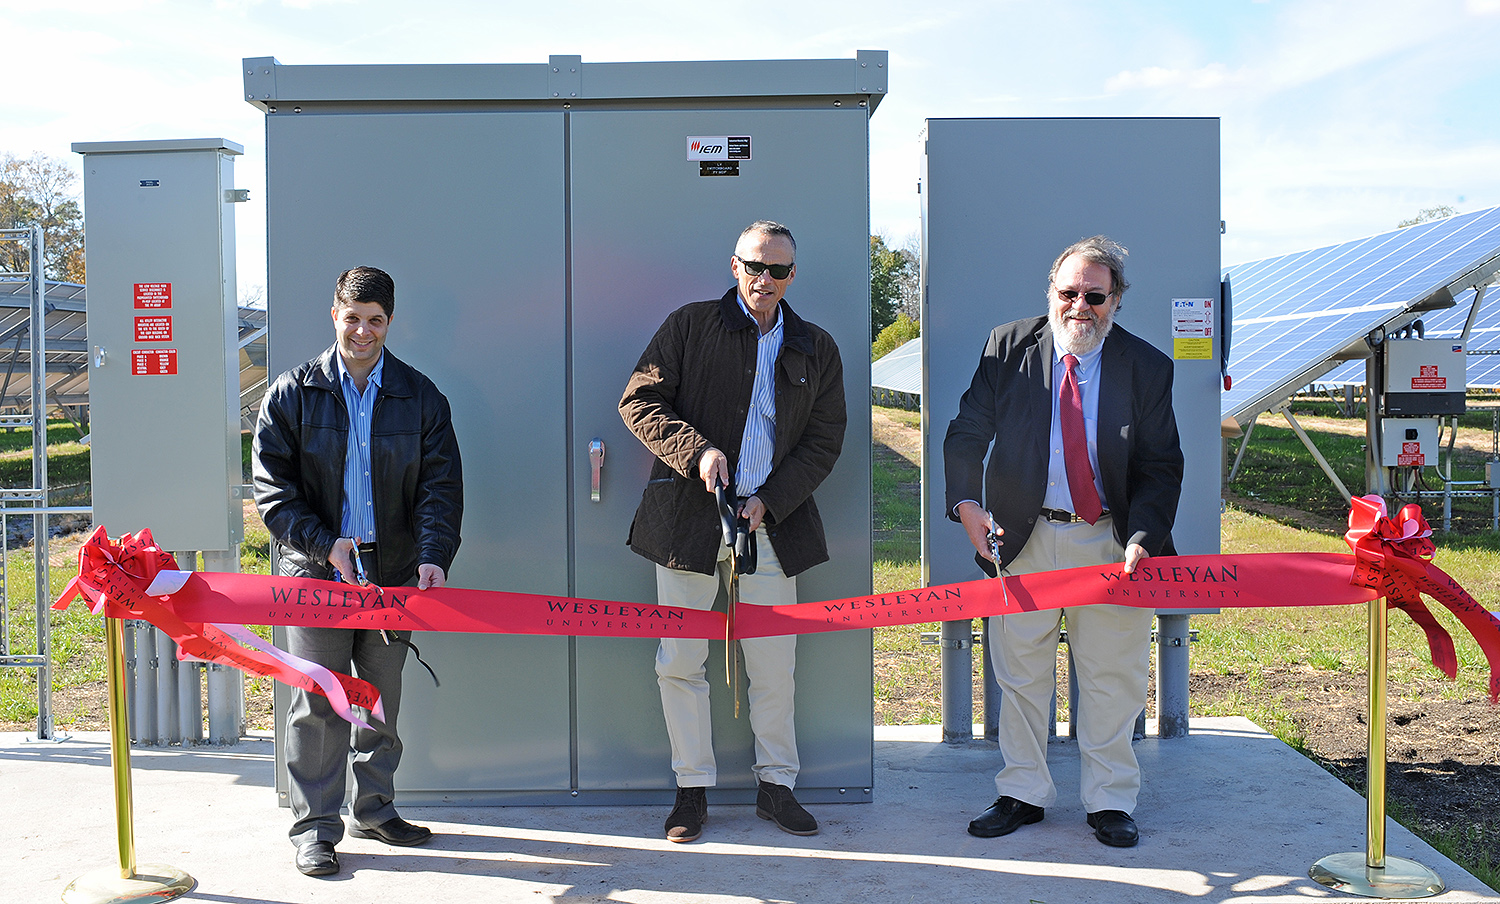 City of Middletown Mayor Daniel Drew, Wesleyan President Michael Roth, and former Vice President for Finance and Administration John Meerts participated in a ribbon-cutting ceremony Nov. 1 for Wesleyan's new photo